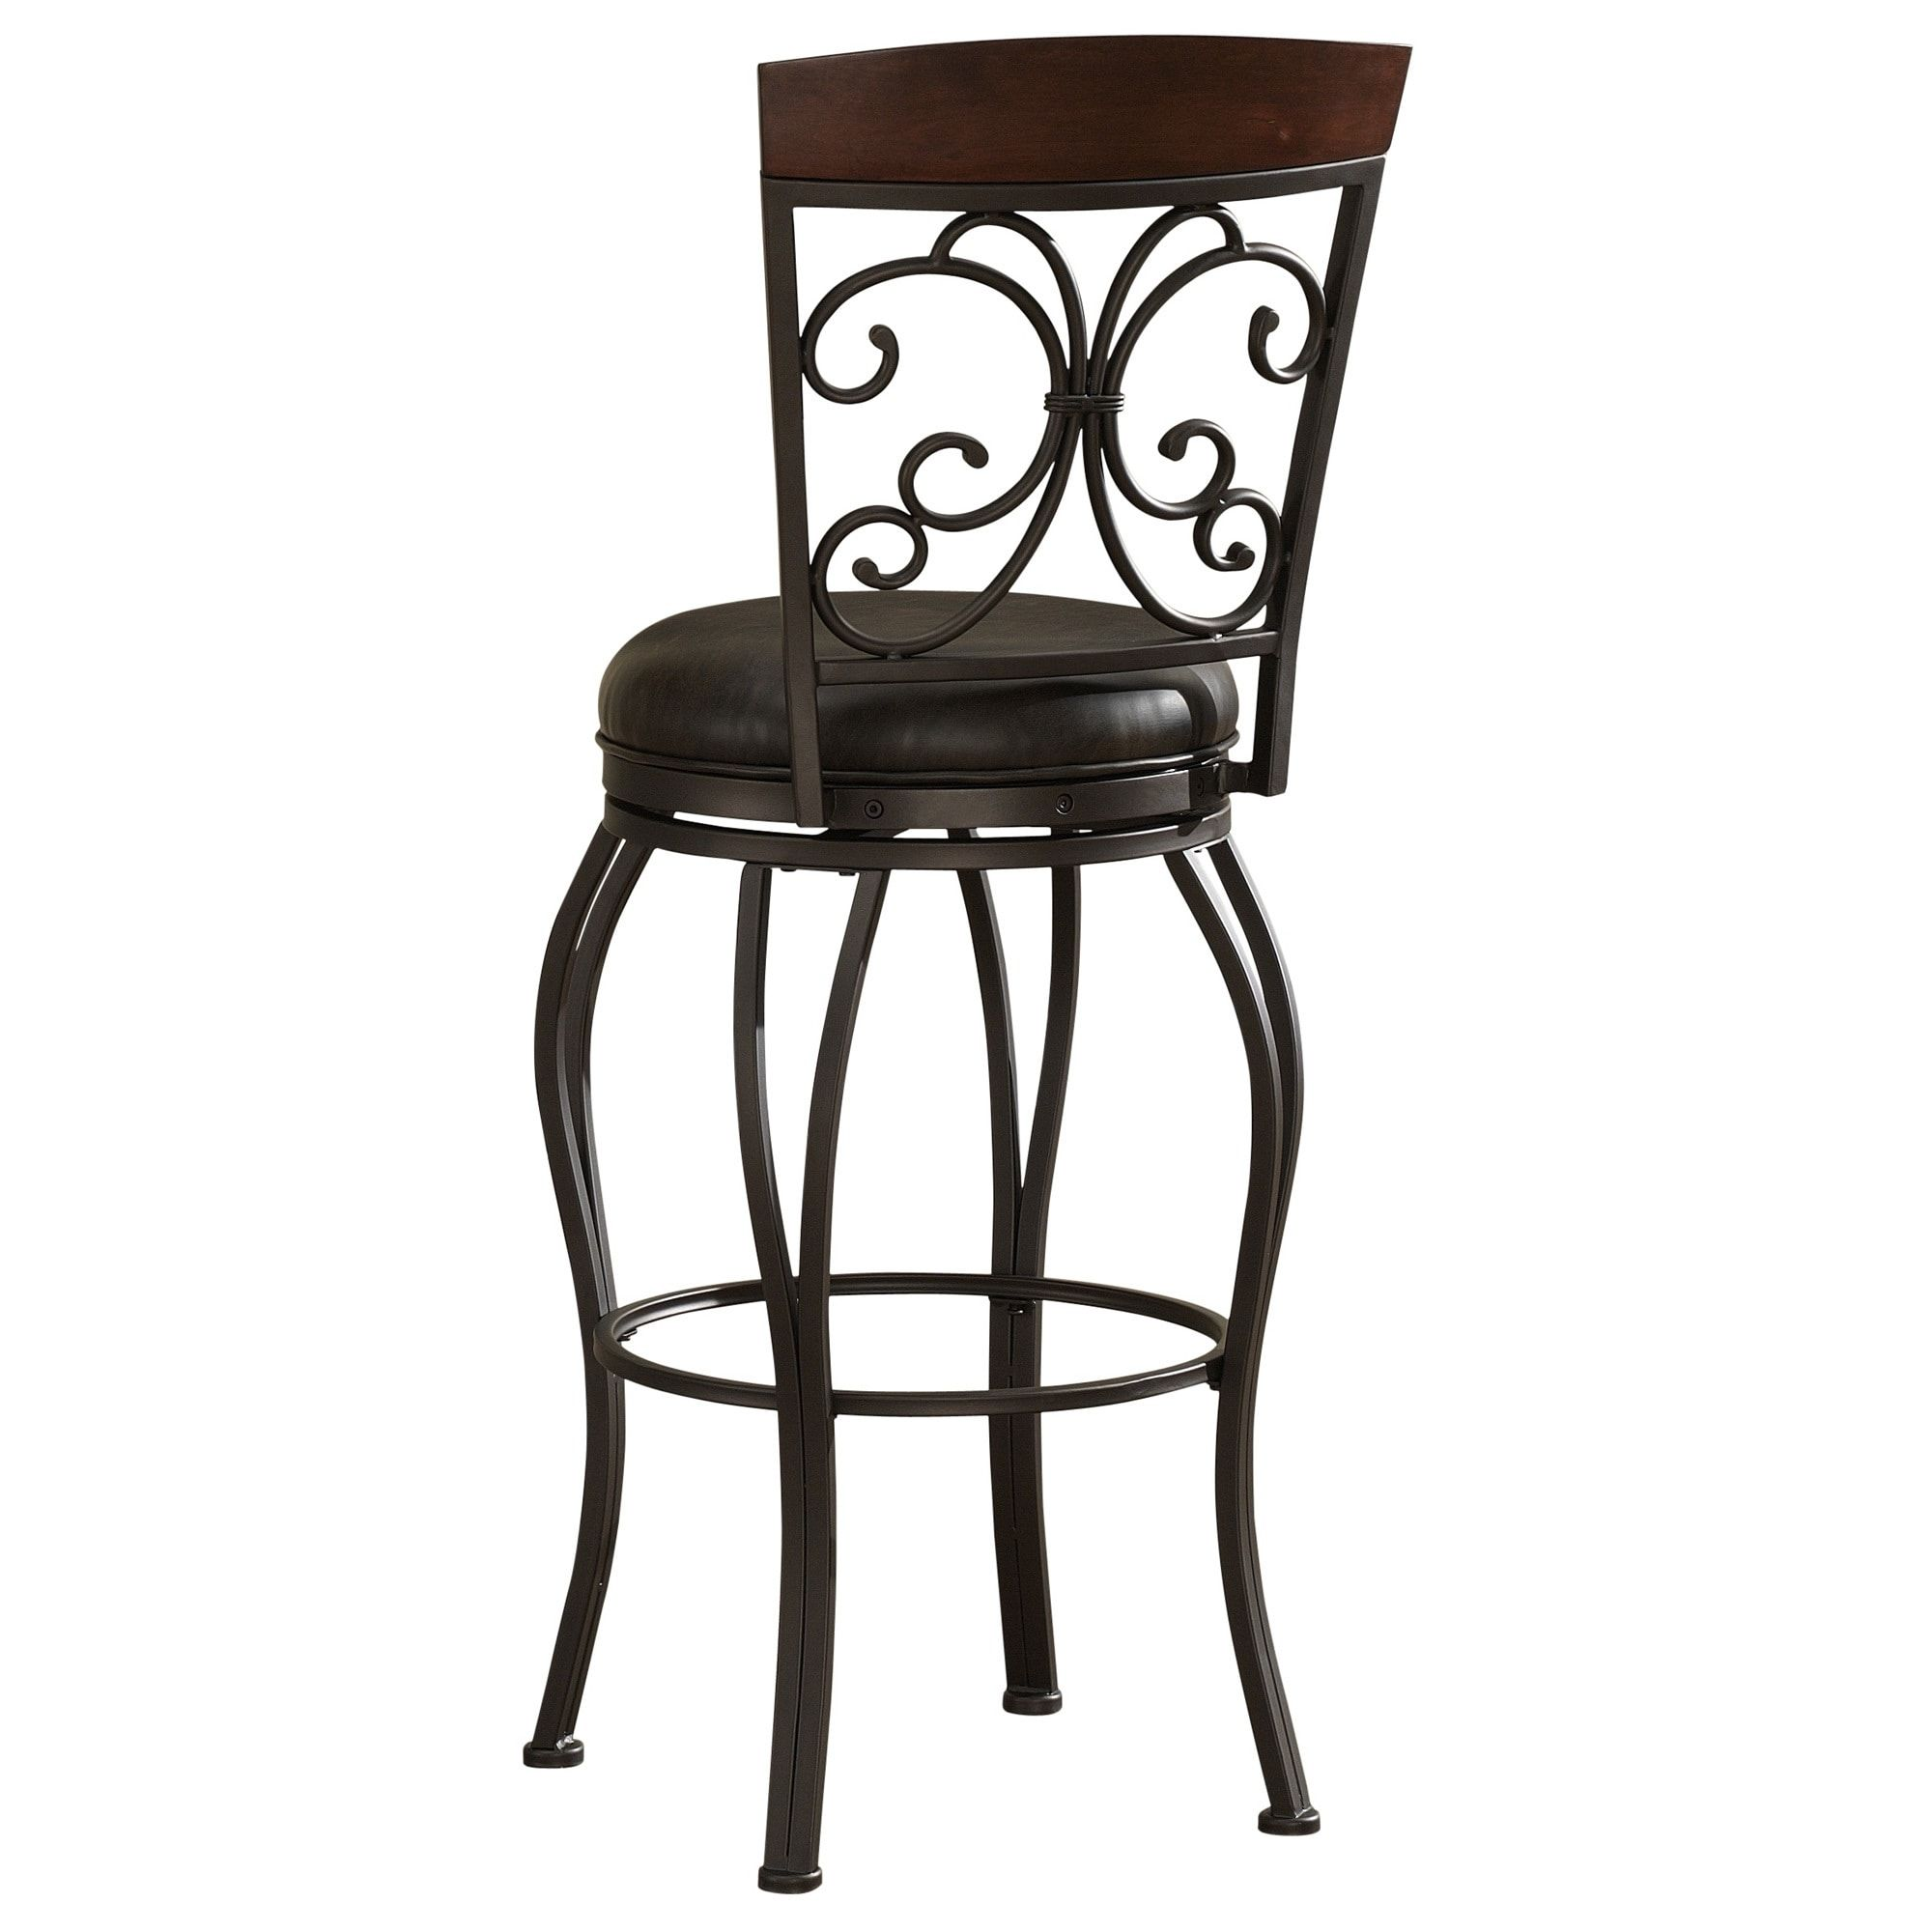 Adalyn 30 Inch Leather Seat Swivel Stool Counter Height